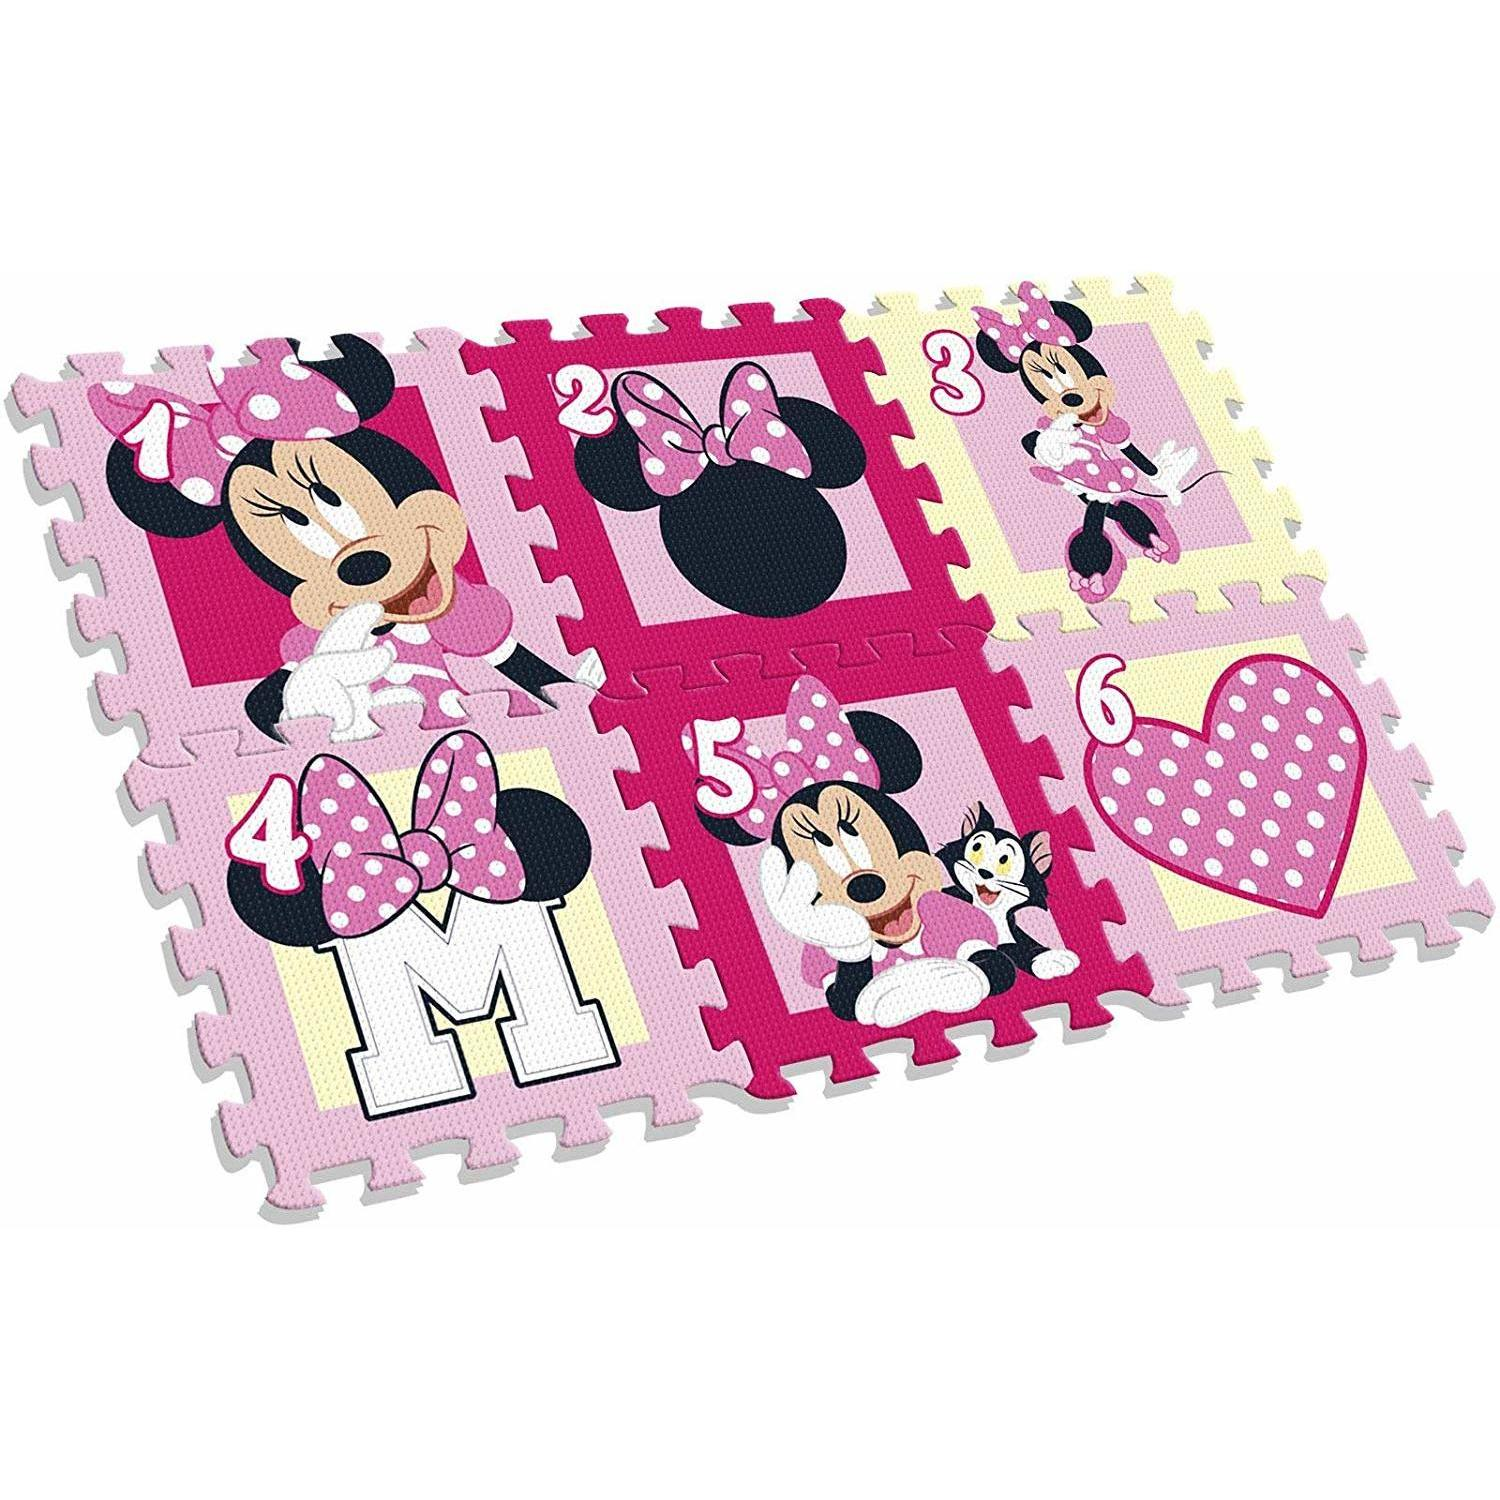 Covor puzzle Minnie Mouse 6 piese SunCity EWA20123WD